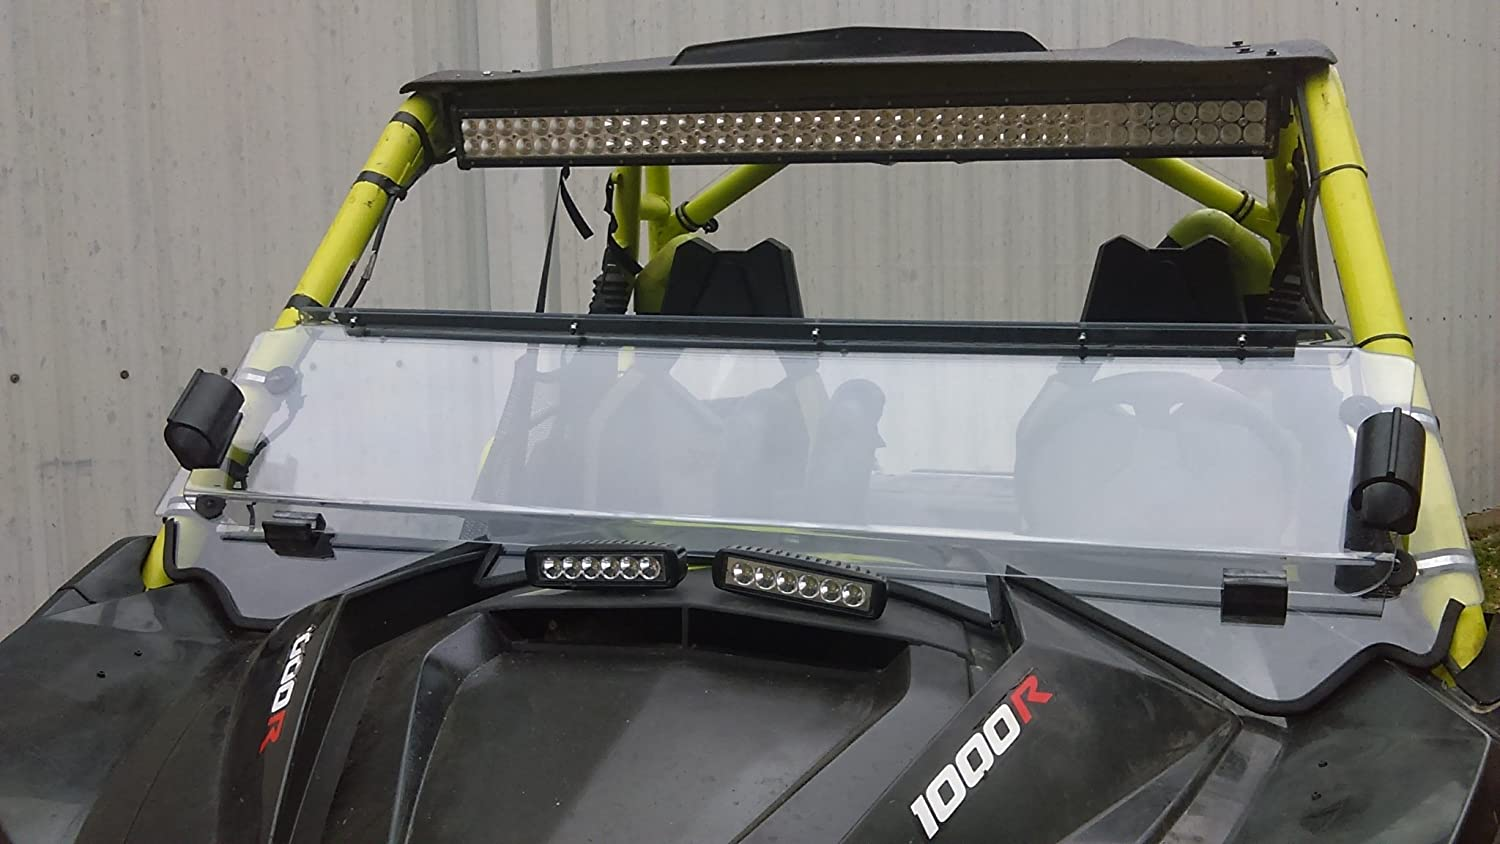 A/&S AUDIO AND SHIELD DESIGNS 2013-2018 Can AM Maverick Max 1000r 1//4 Polycarbonate Fold Down Windshield